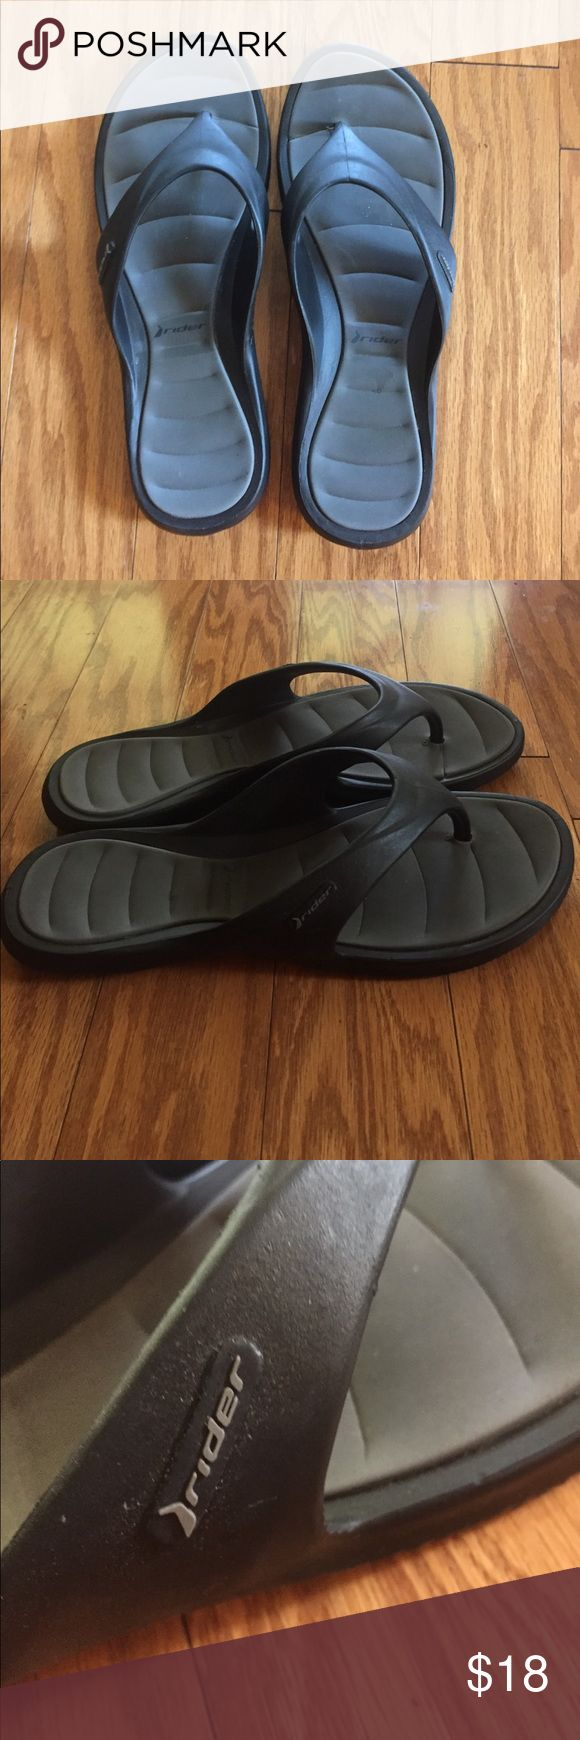 Great condition Rider flip flops size 10 women Great condition, a little wear in the photos on the heels...clean and comfy flip flops for recovery after a long run!  Size 10 women Shoes Sandals